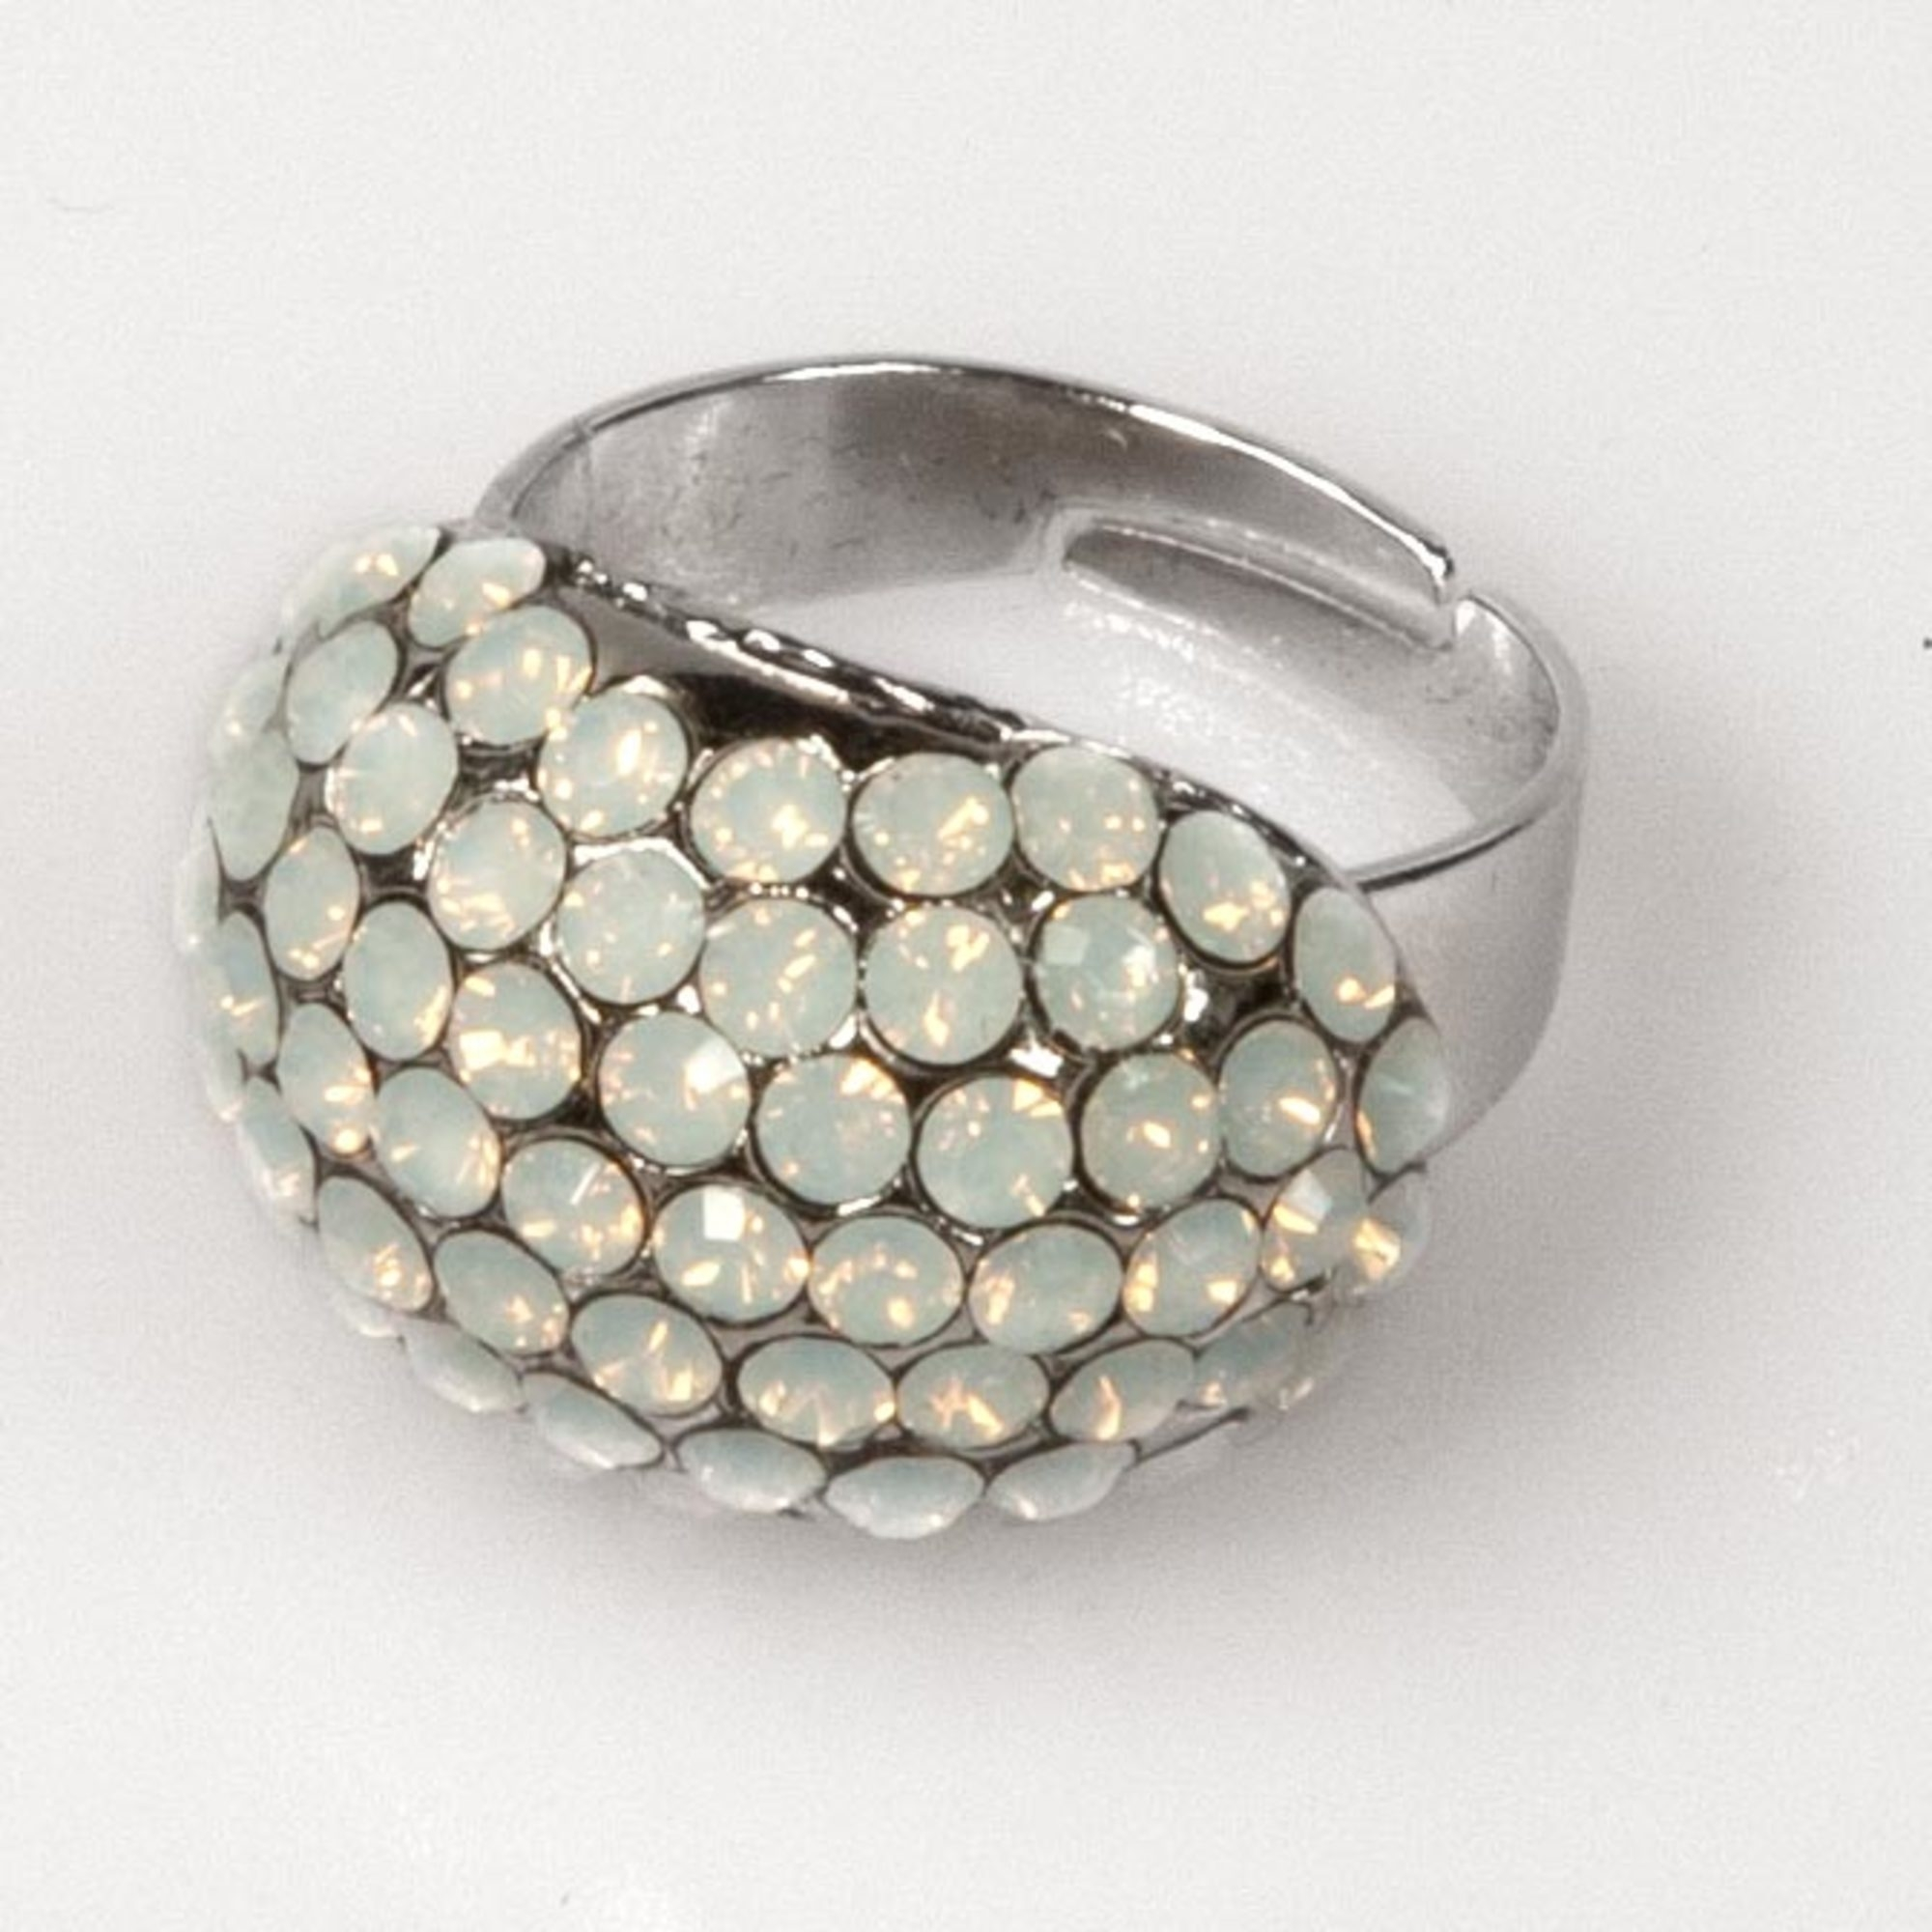 Oval Shape Ring - White Opal